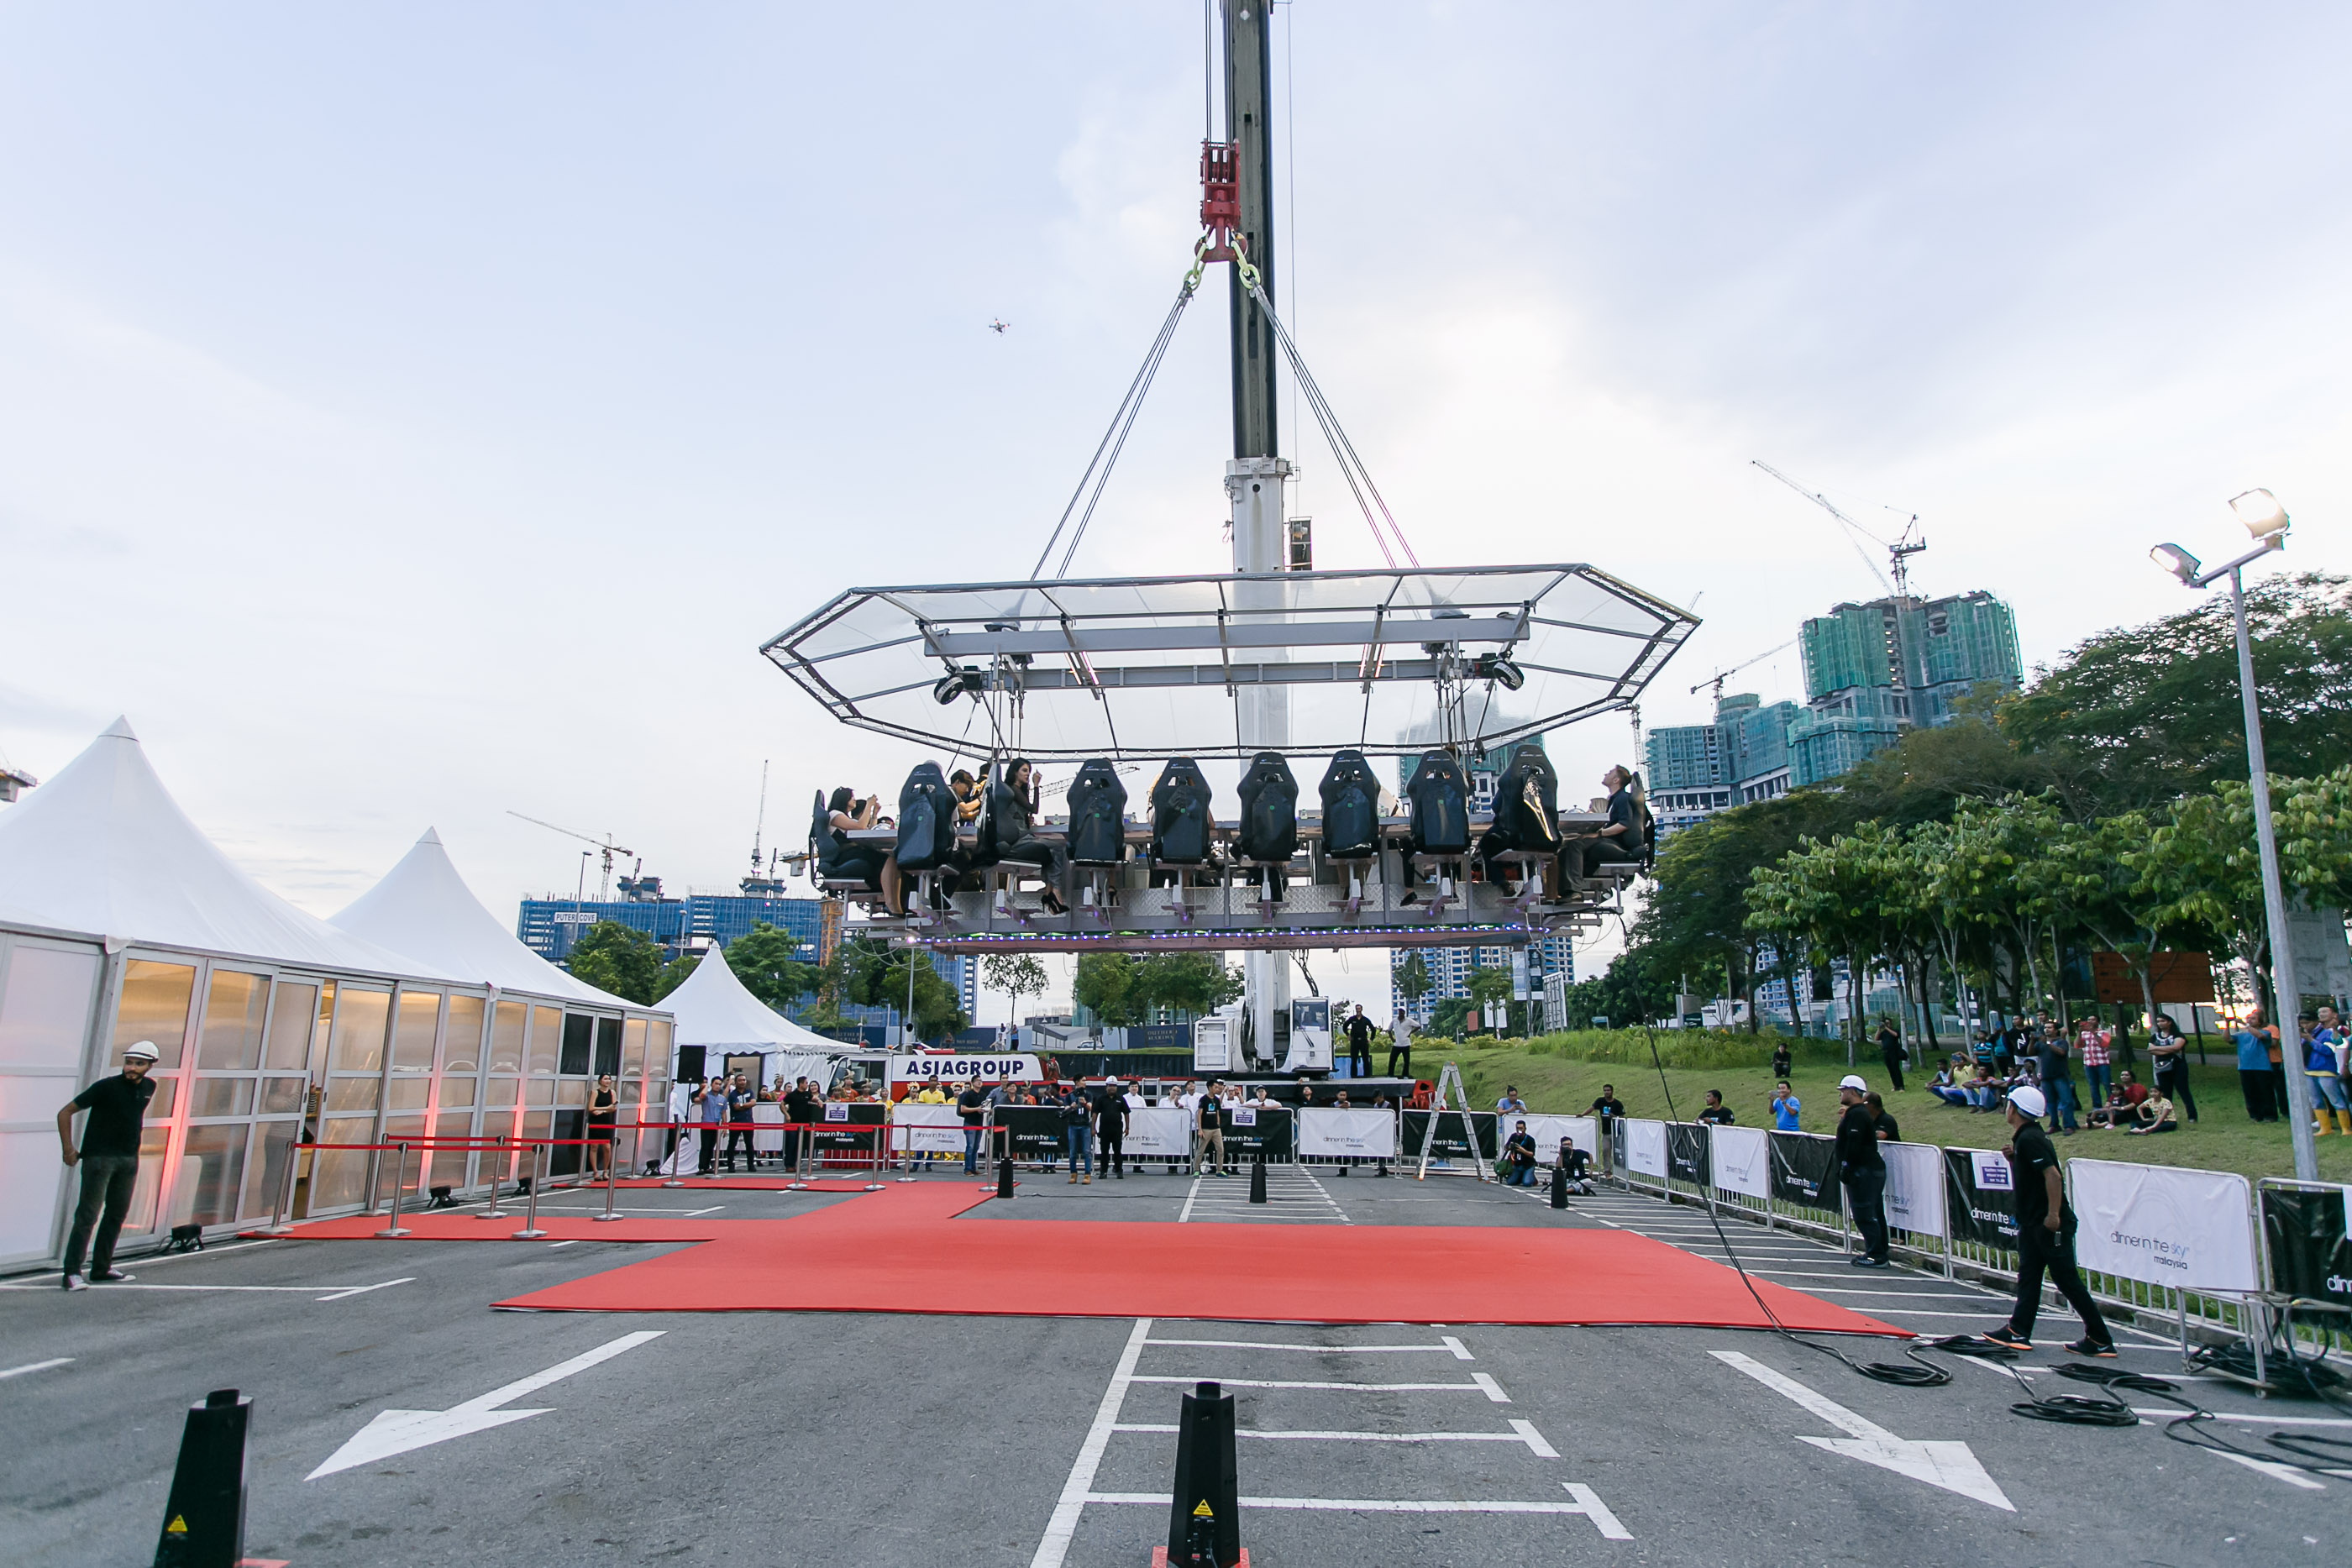 Dinner In The Sky Officially Takes Off In Johor JOHOR NOW - Dinner in the sky an unforgettable experience